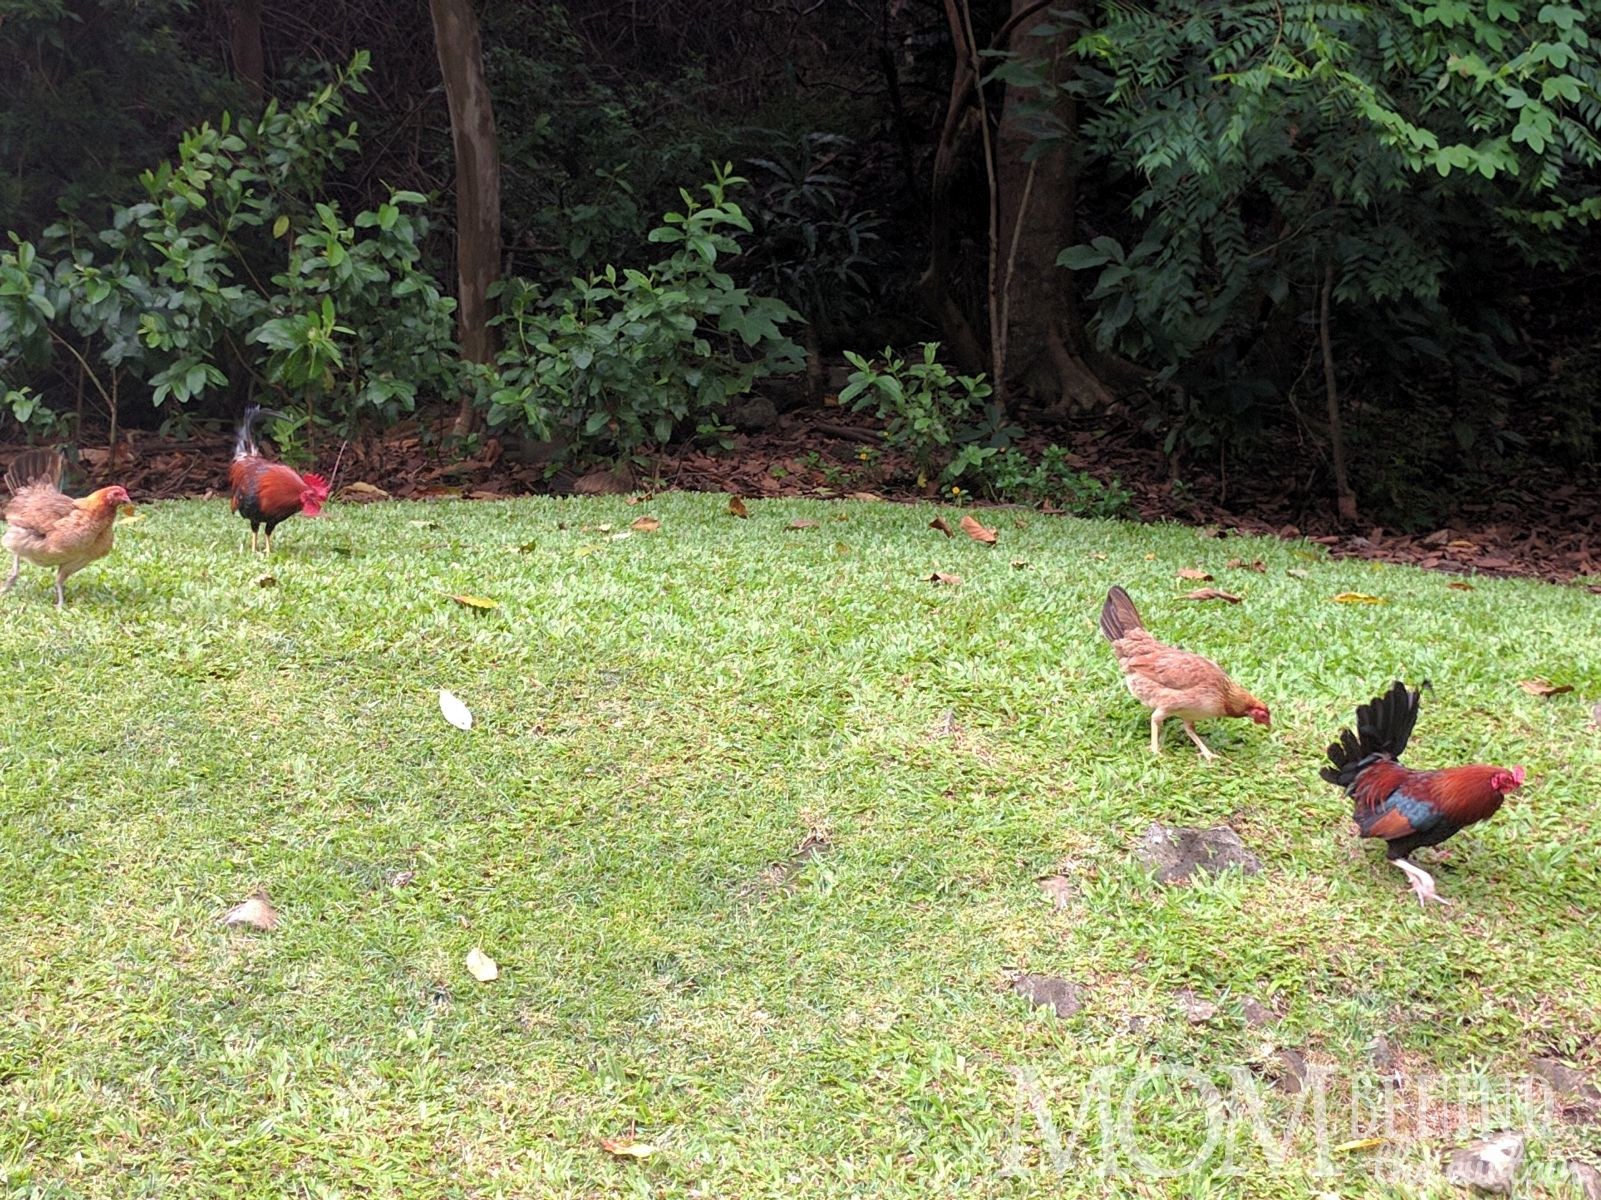 Hawaii chickens and roosters on the edge of the tropical forest on Maui.